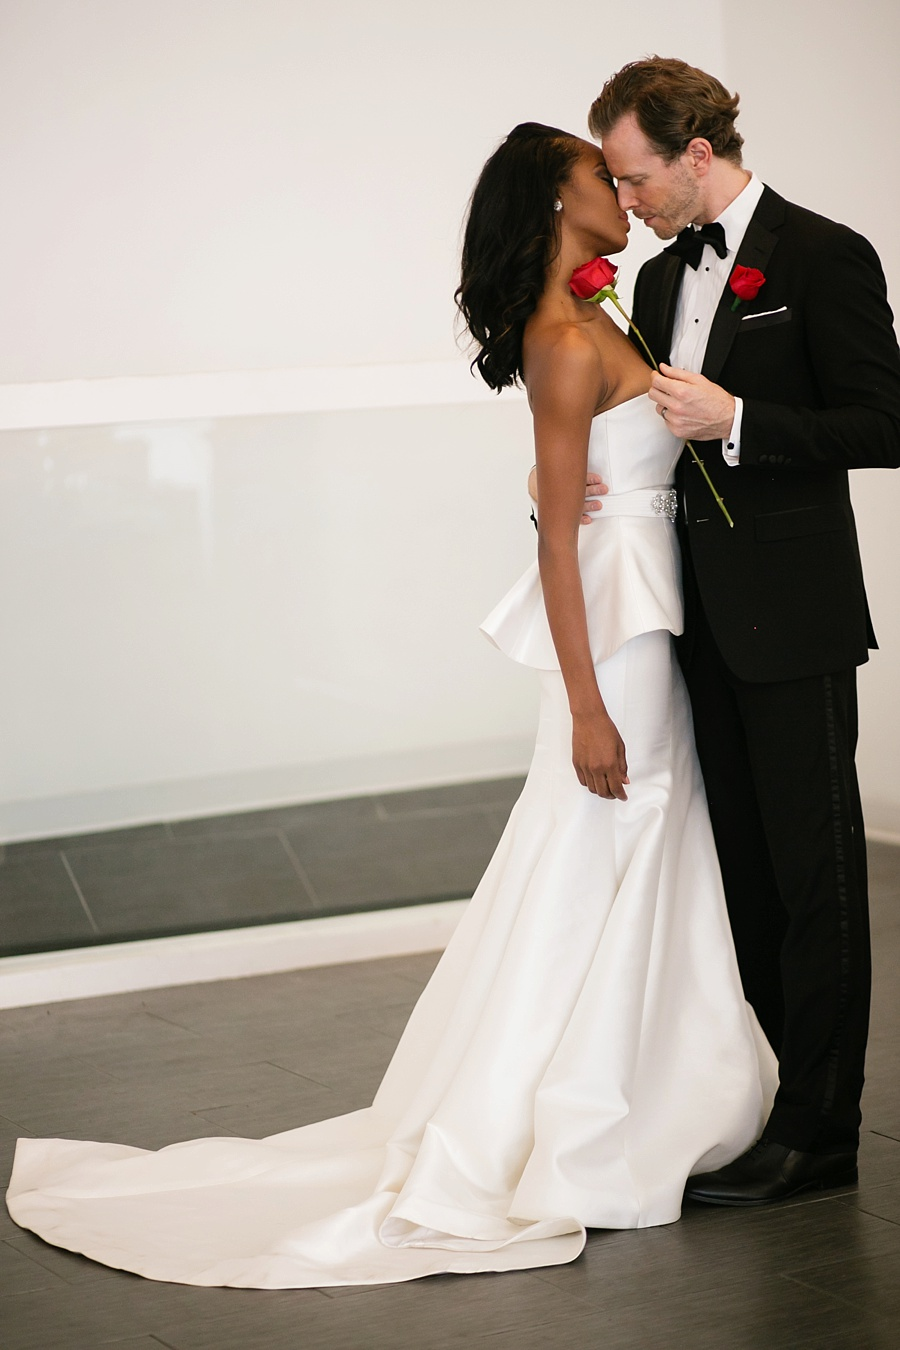 Scandal Olivia Pope and Fitz Wedding- By petronella11